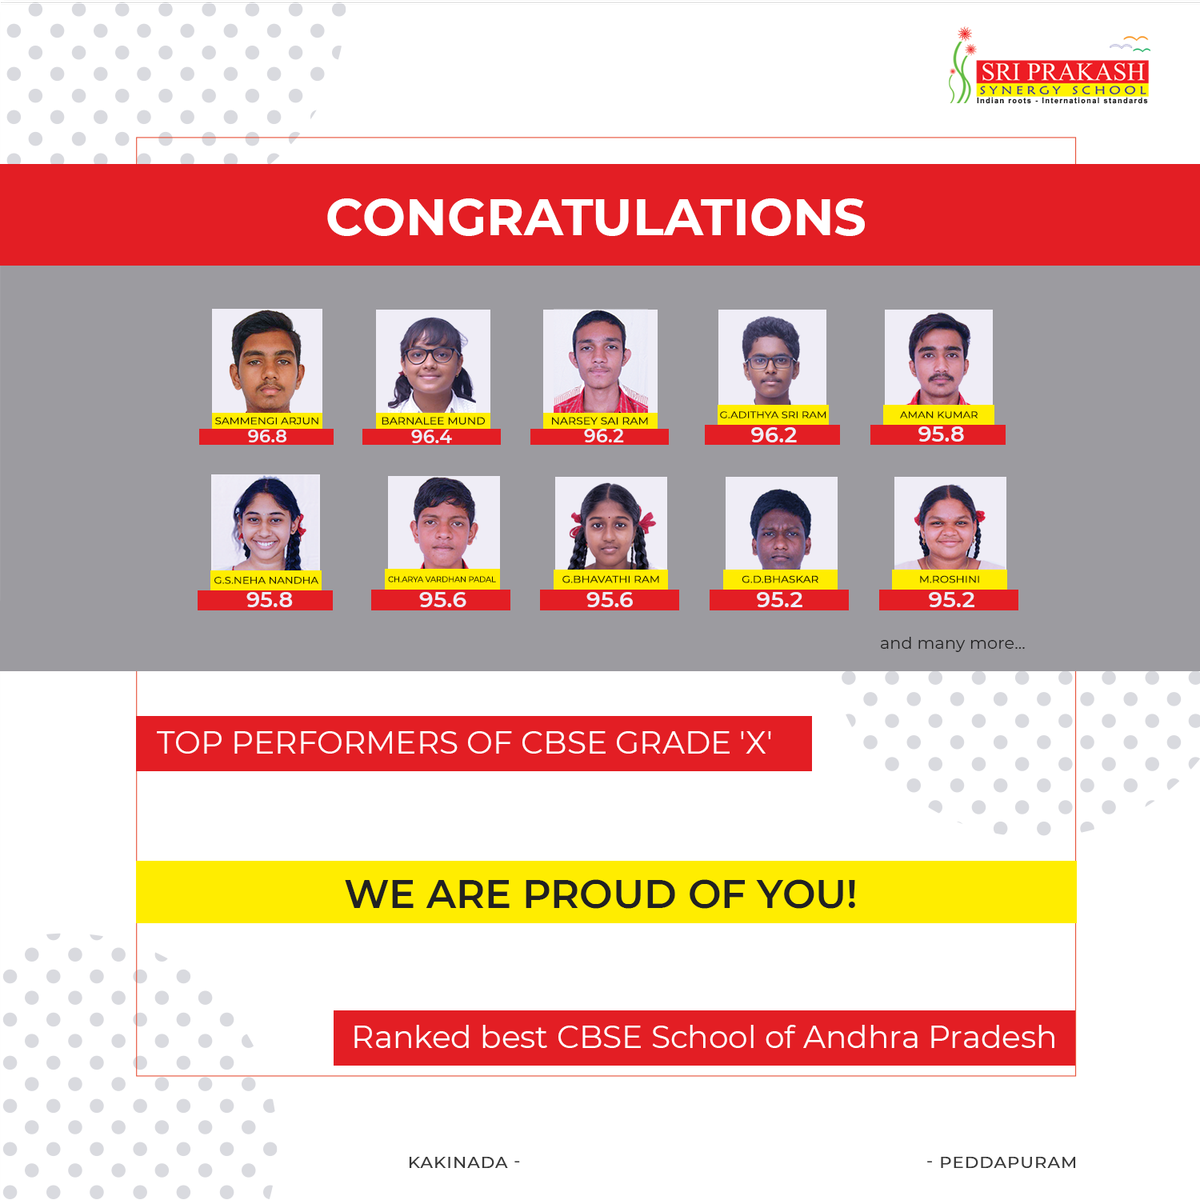 Congratulations to all the students of Sri Prakash Synergy School on the wonderful results. Wishing you a bright future ahead!   For Admissions: https://bit.ly/2zXmZHu    #India #teaching #Science #English #studentlife #SriPrakash #cbseschool #cbseresults #cbseresults2020pic.twitter.com/LsDY4sfYMU